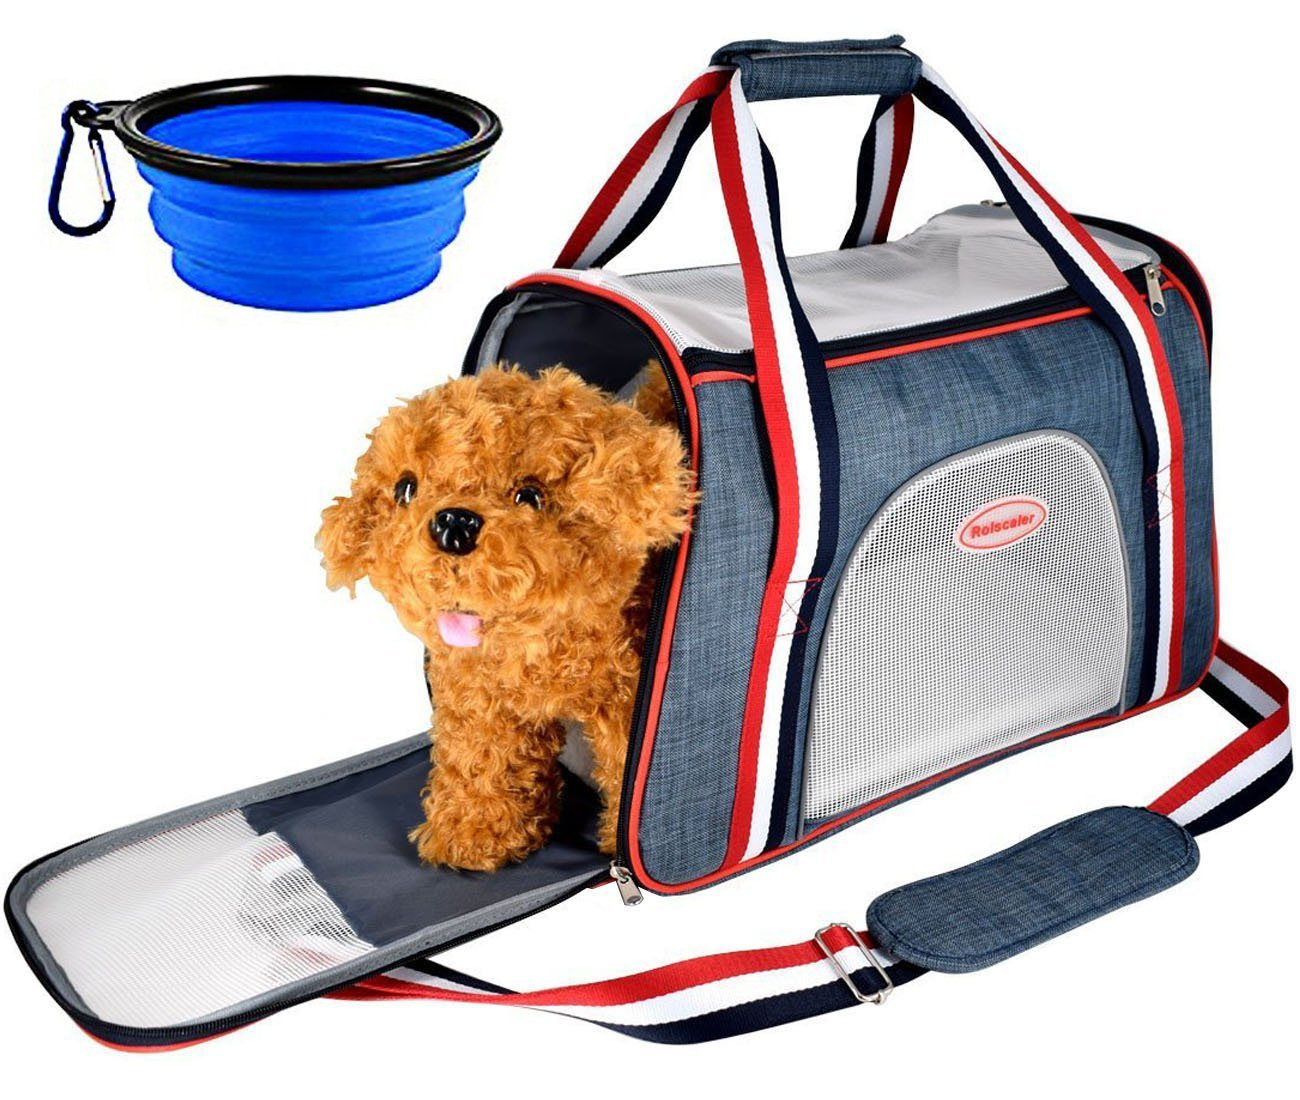 Rolscaler Soft Sided Carriers Pet Portable Bag with Food Water Feeding Portable Travel Bowl,Zippers Safety Clasp & Fleece Bedding,Perfect for Little Dog/Cat Airline Approved (Color - 2)